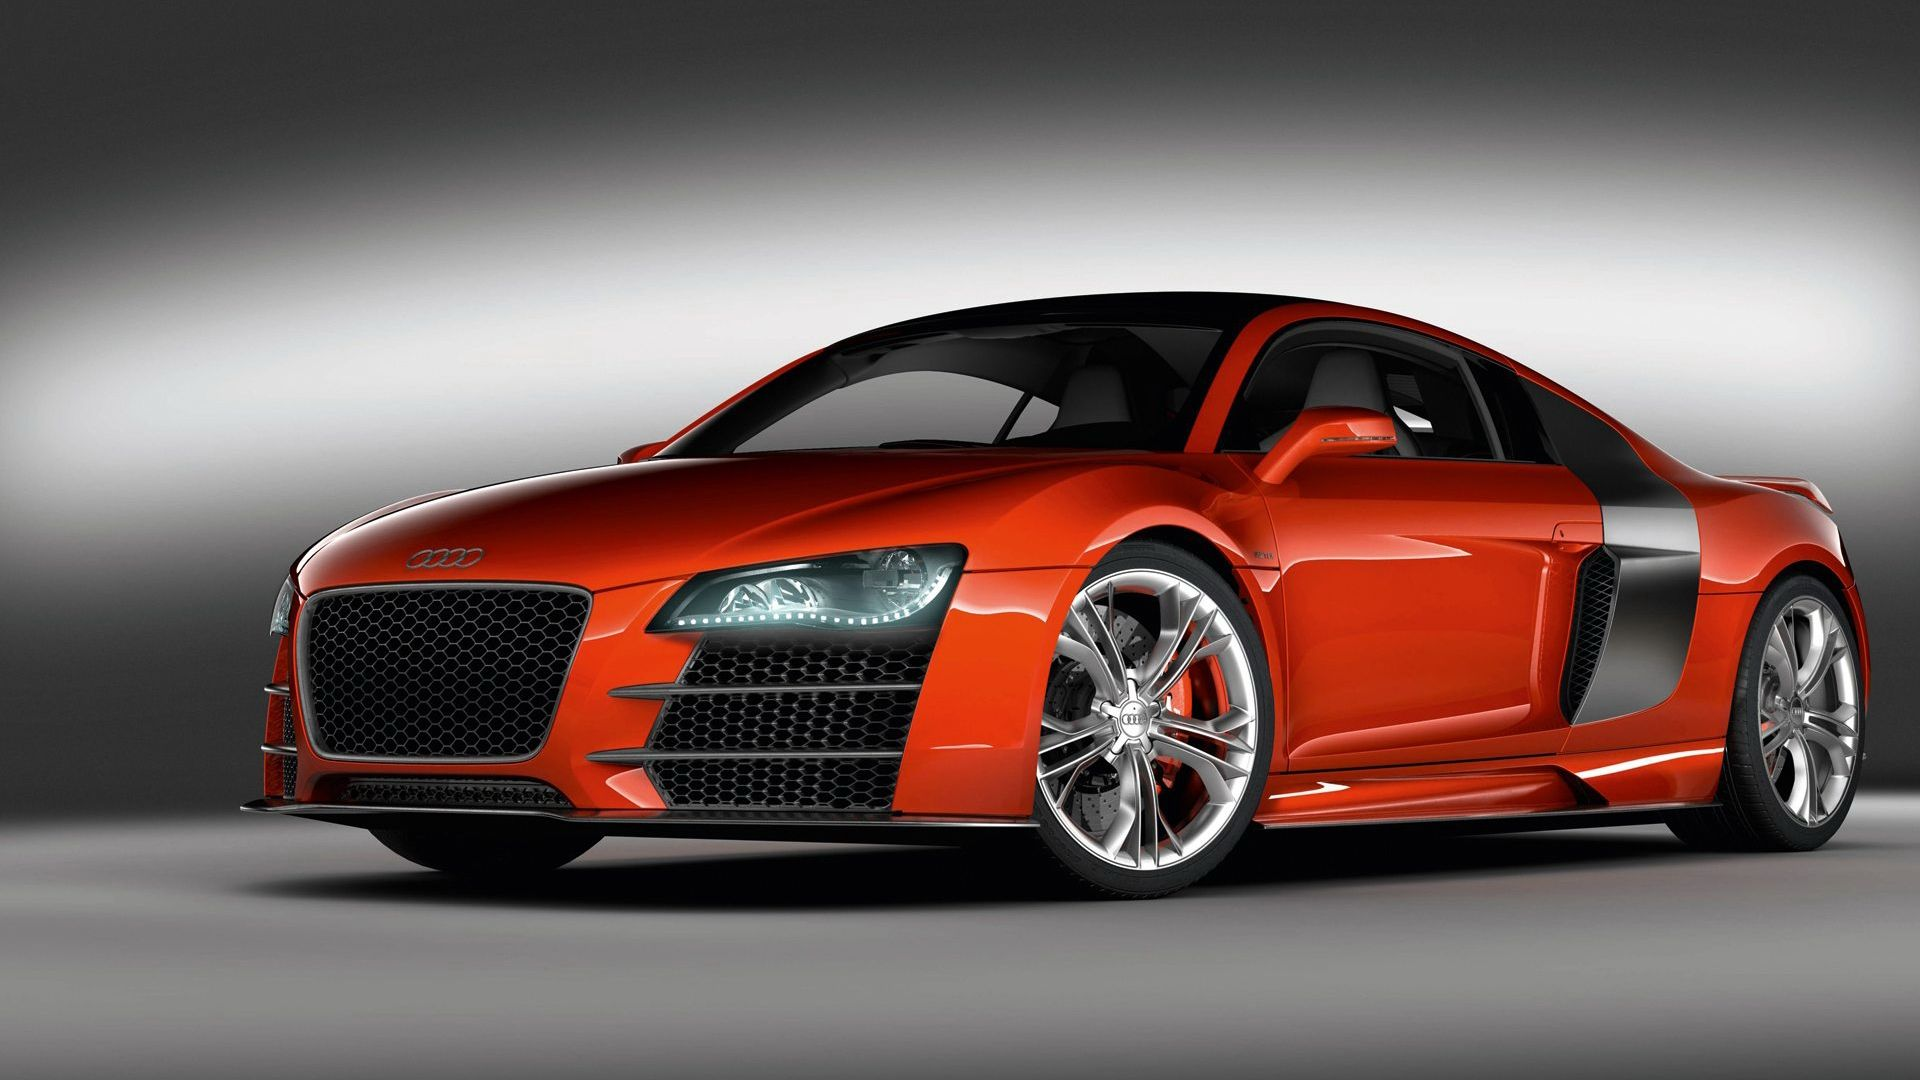 Fondos De Pantalla En Hd With Images Audi R8 Car Audi Cars